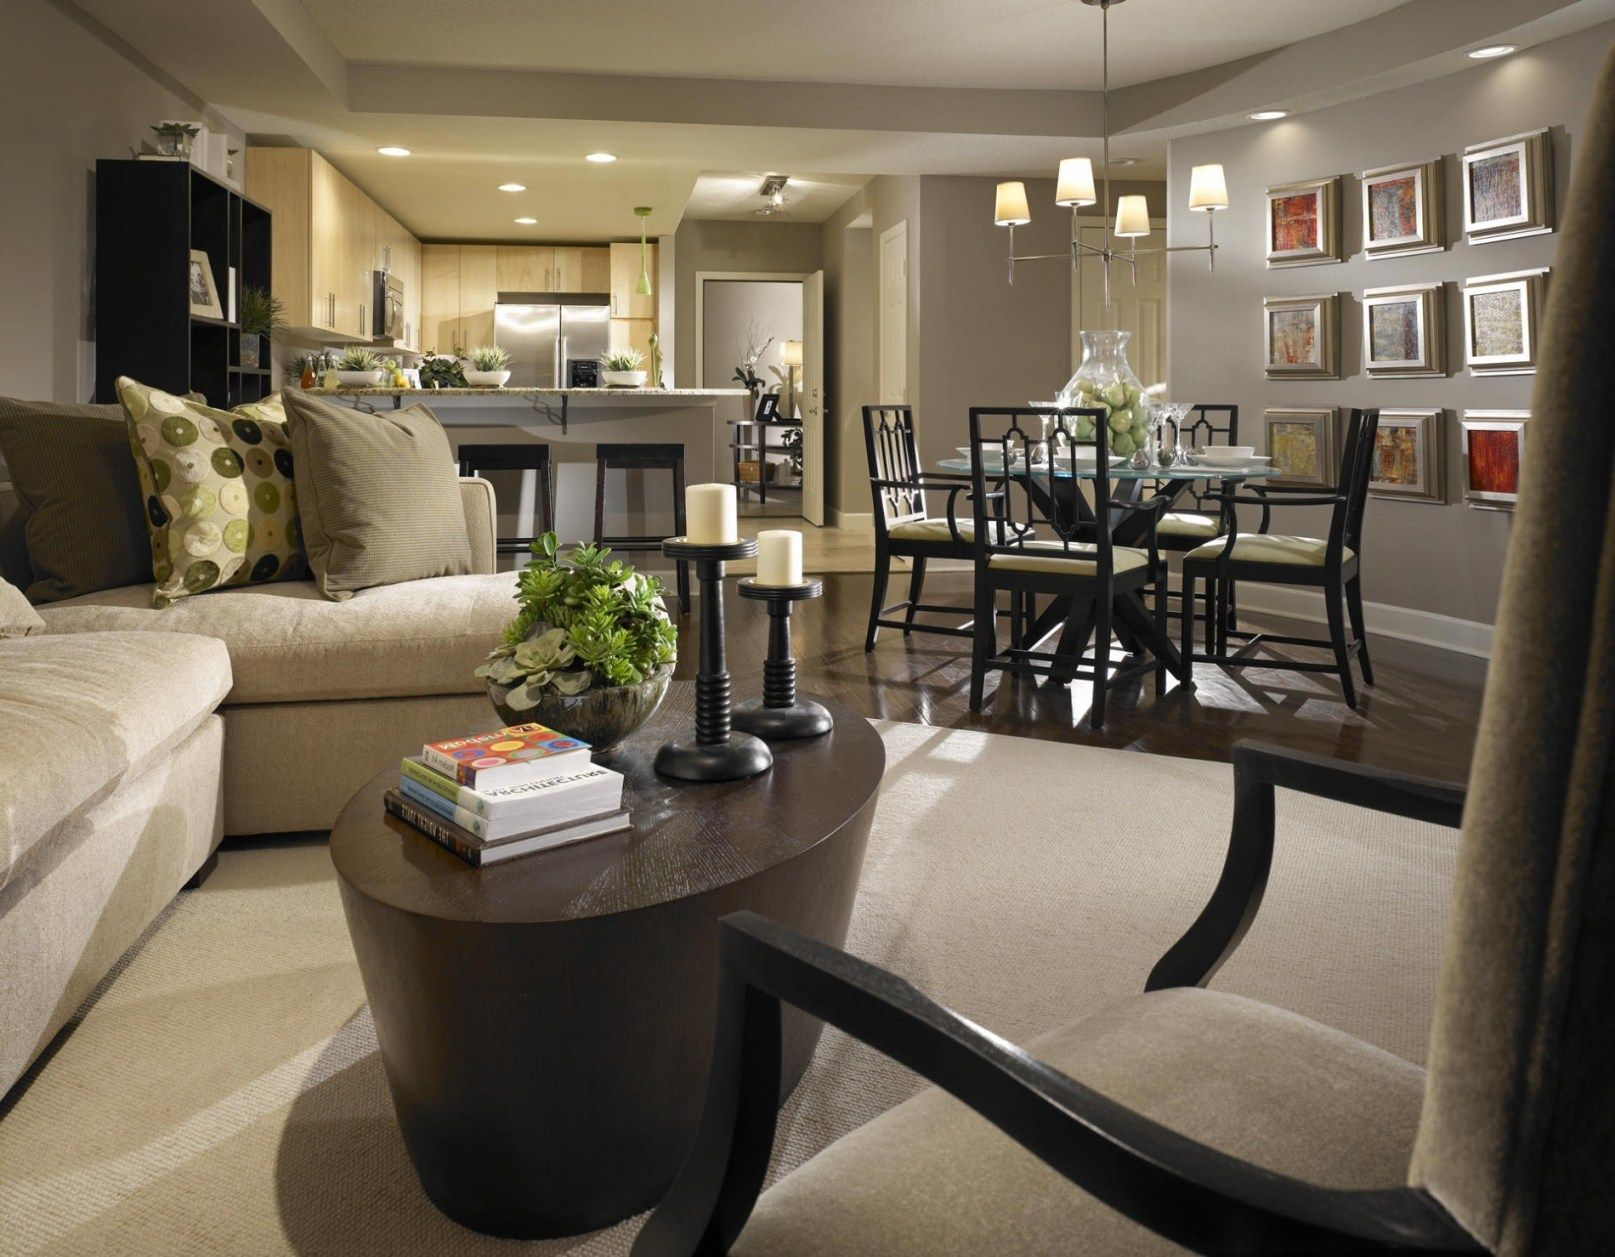 Kitchen And Living Room Design Ideas Adorable Top 10 Interior Design Ideas For Lounge Dining Room Top 10 Inspiration